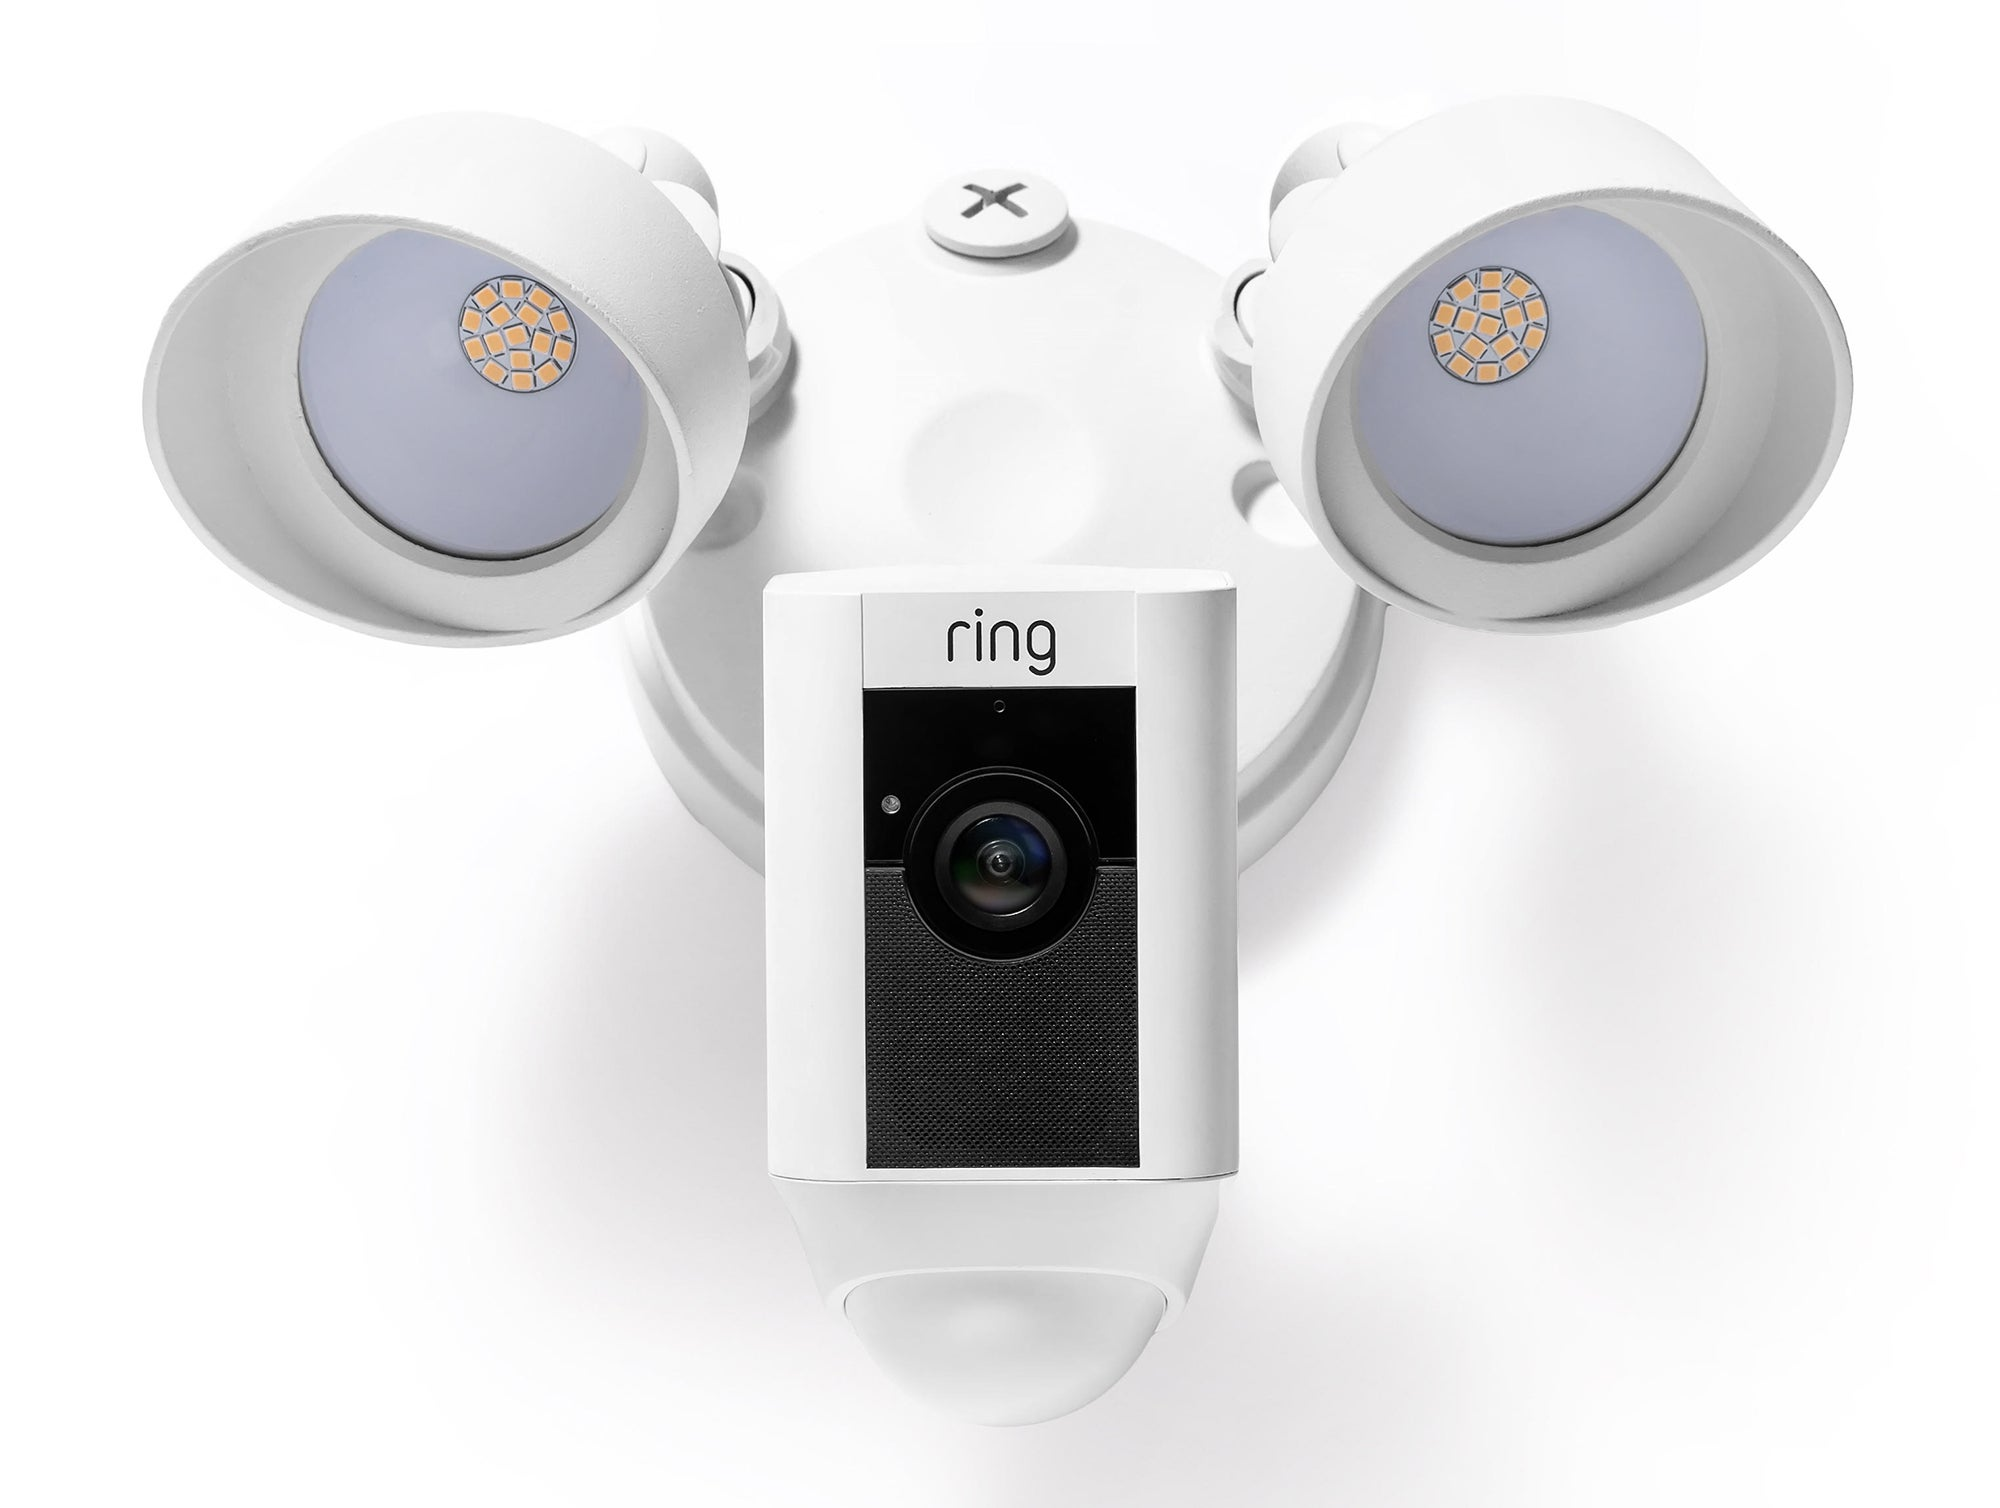 The Ring Floodlight Cam Uses Wi-Fi Video Recording And A